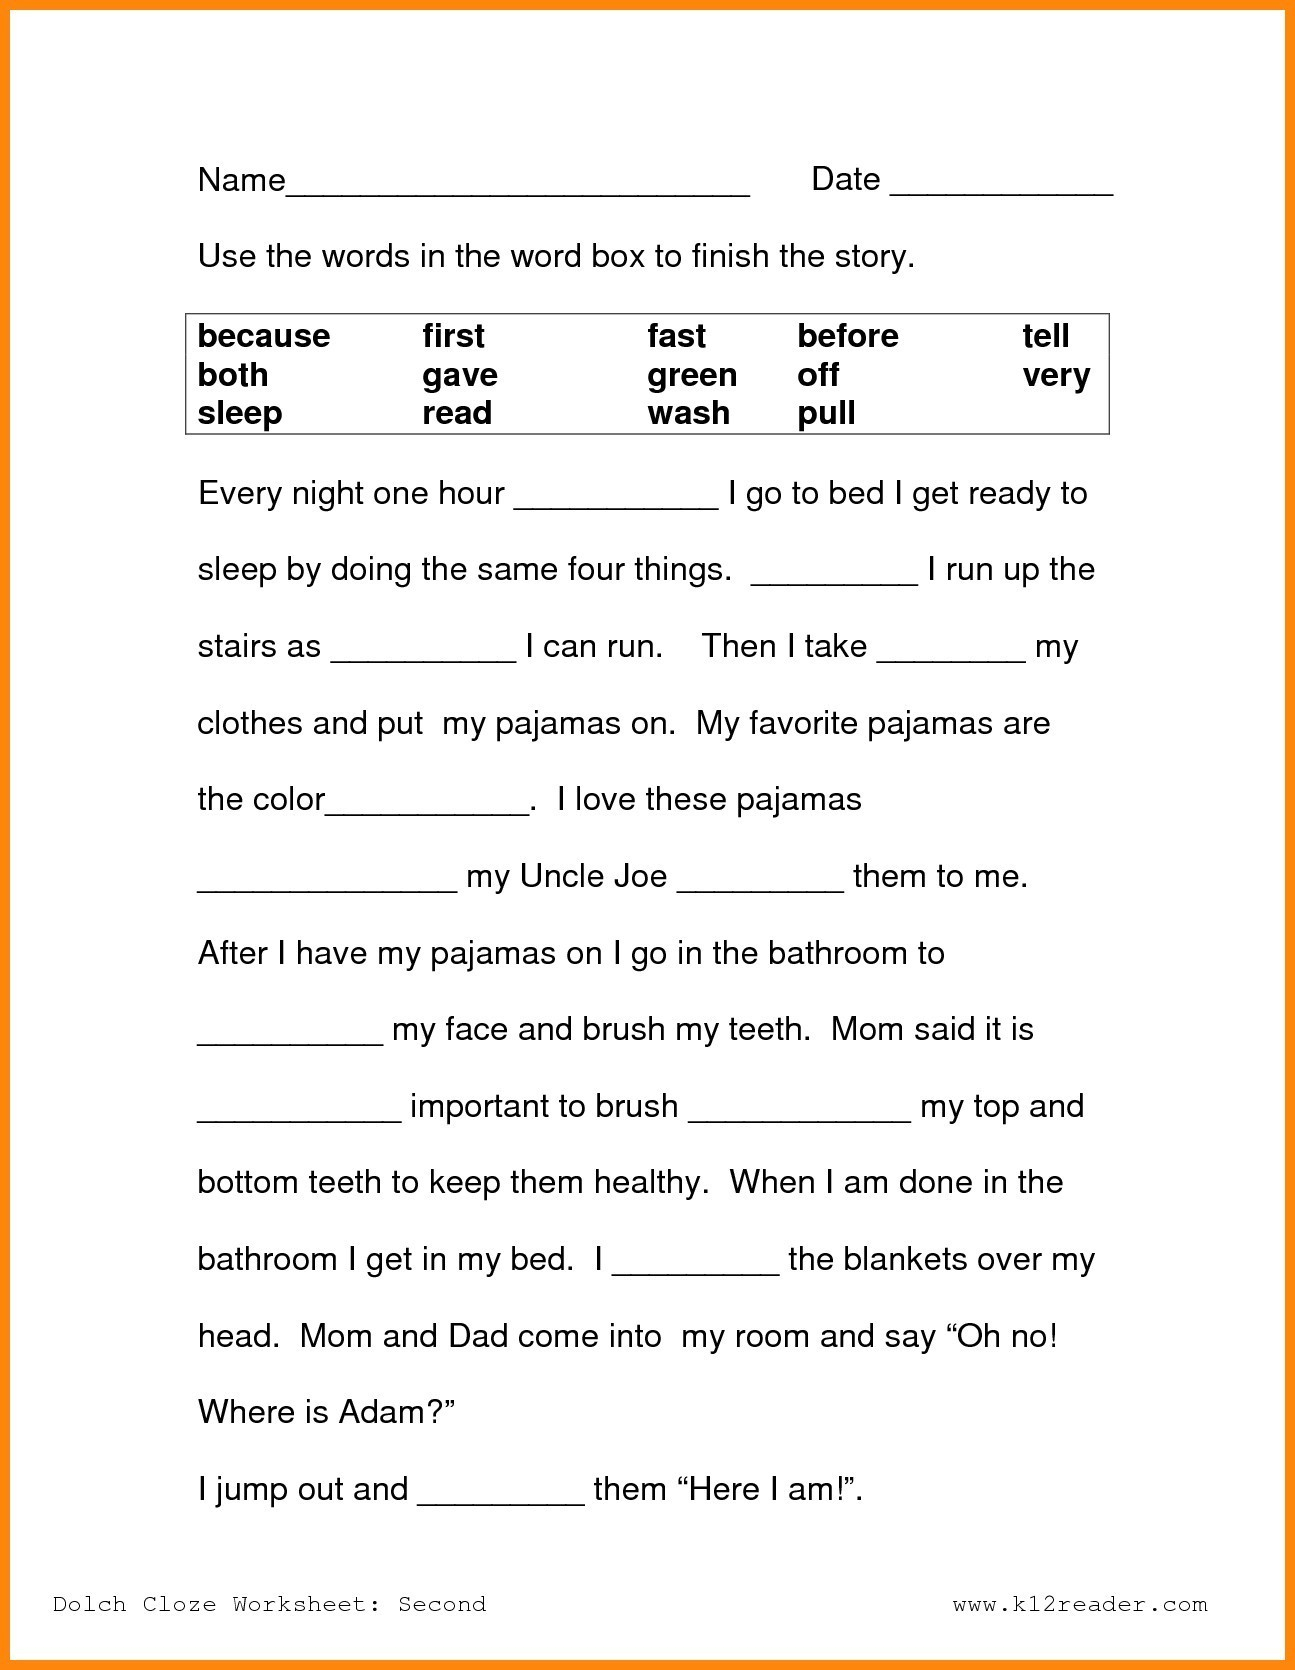 Free Printable Reading Worksheets For 2Nd Grade Lovely Reading - Free Printable Worksheets For 2Nd Grade